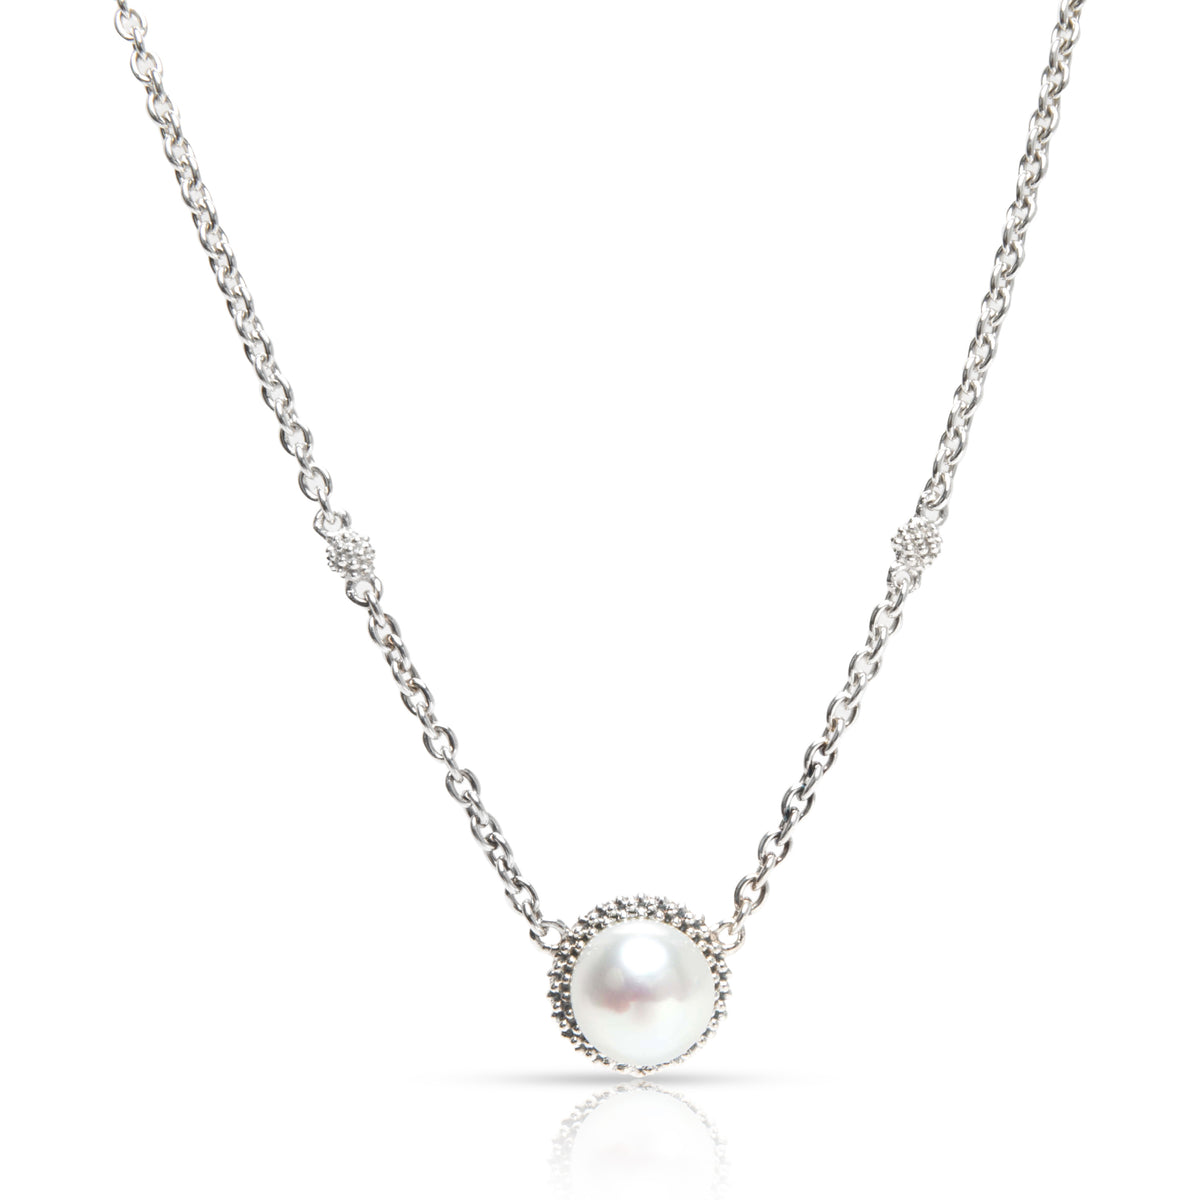 Lagos Luna Pearl Necklace with Caviar Beads in  Sterling Silver